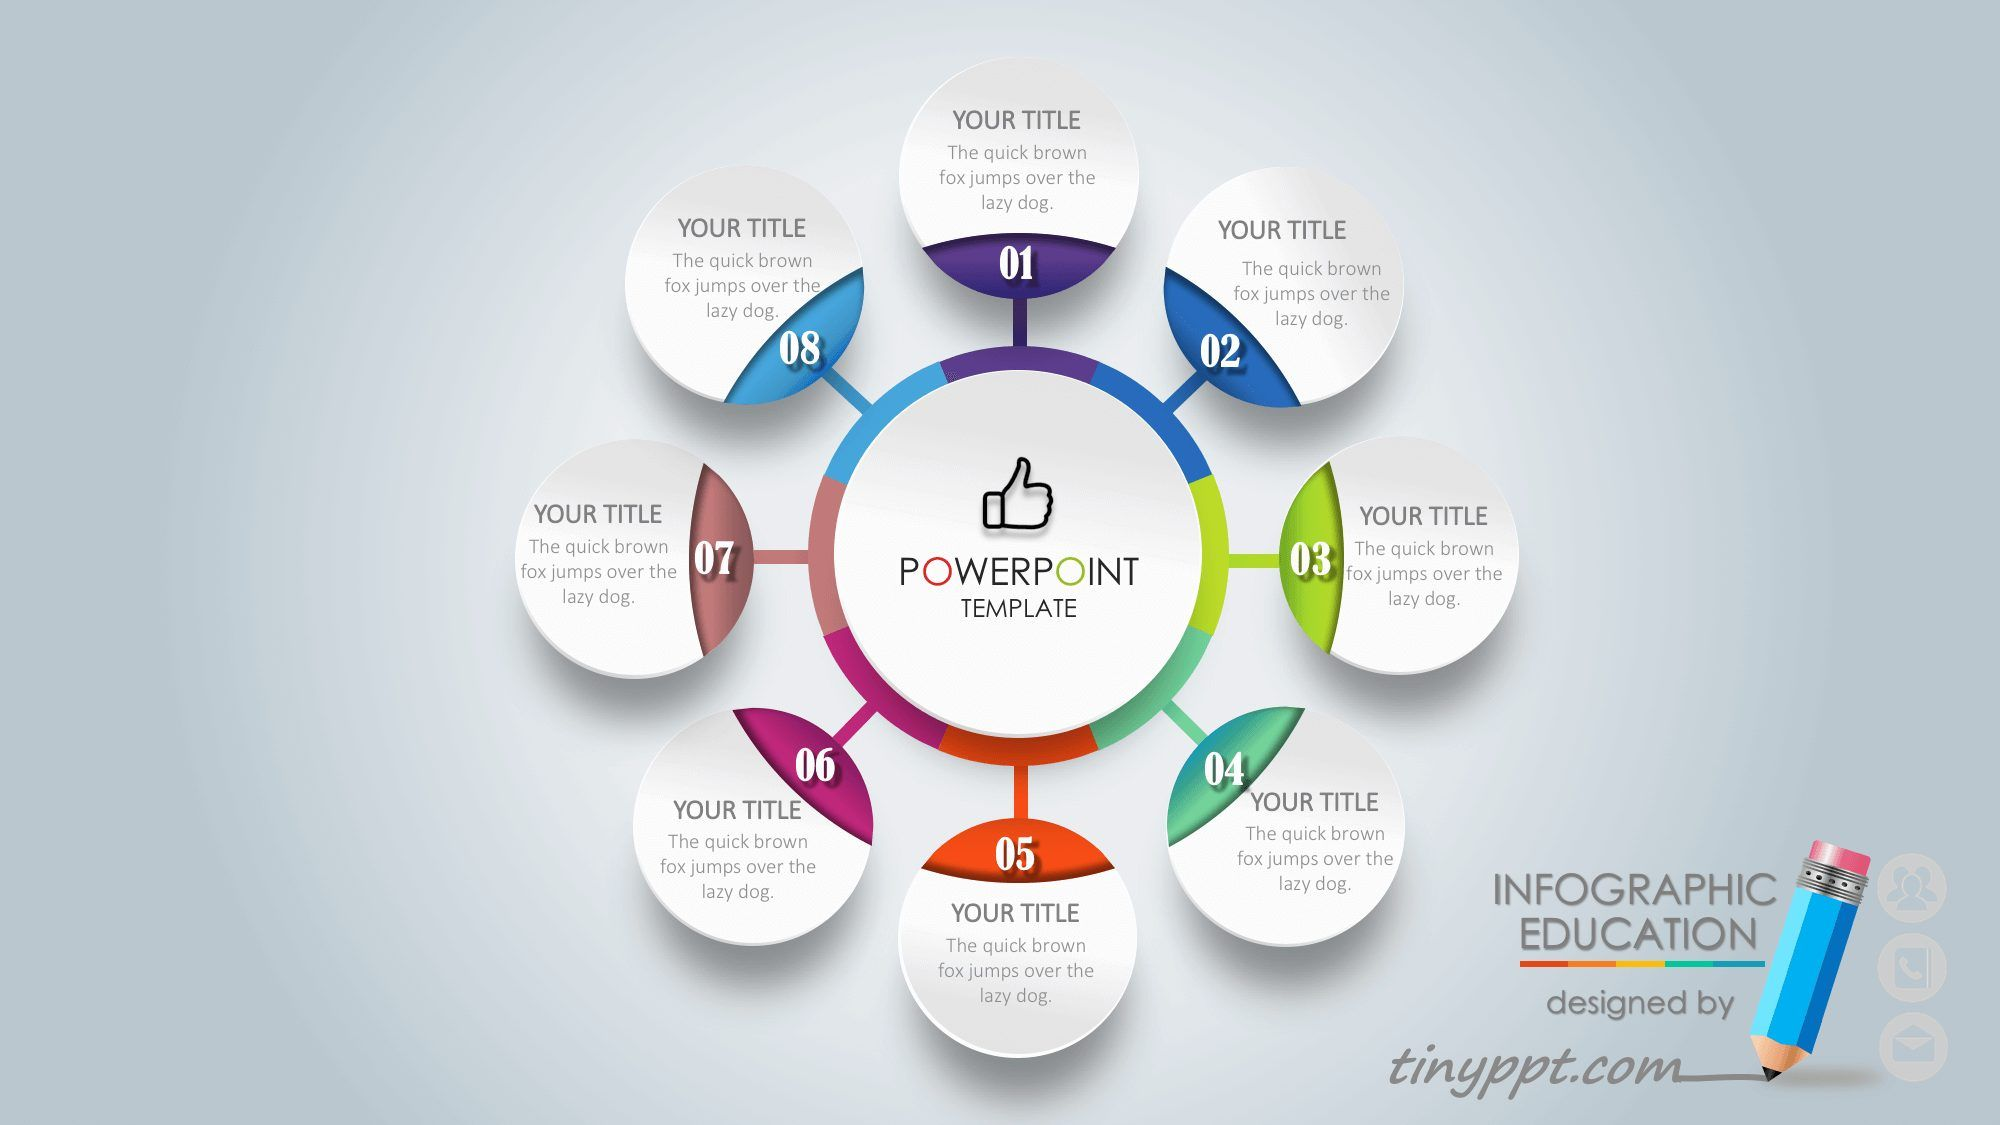 Professional Powerpoint Templates With Animation Design With 8 Circle Shaped Stages Each Circle Has A Powerpoint Infographic Professional Powerpoint Templates